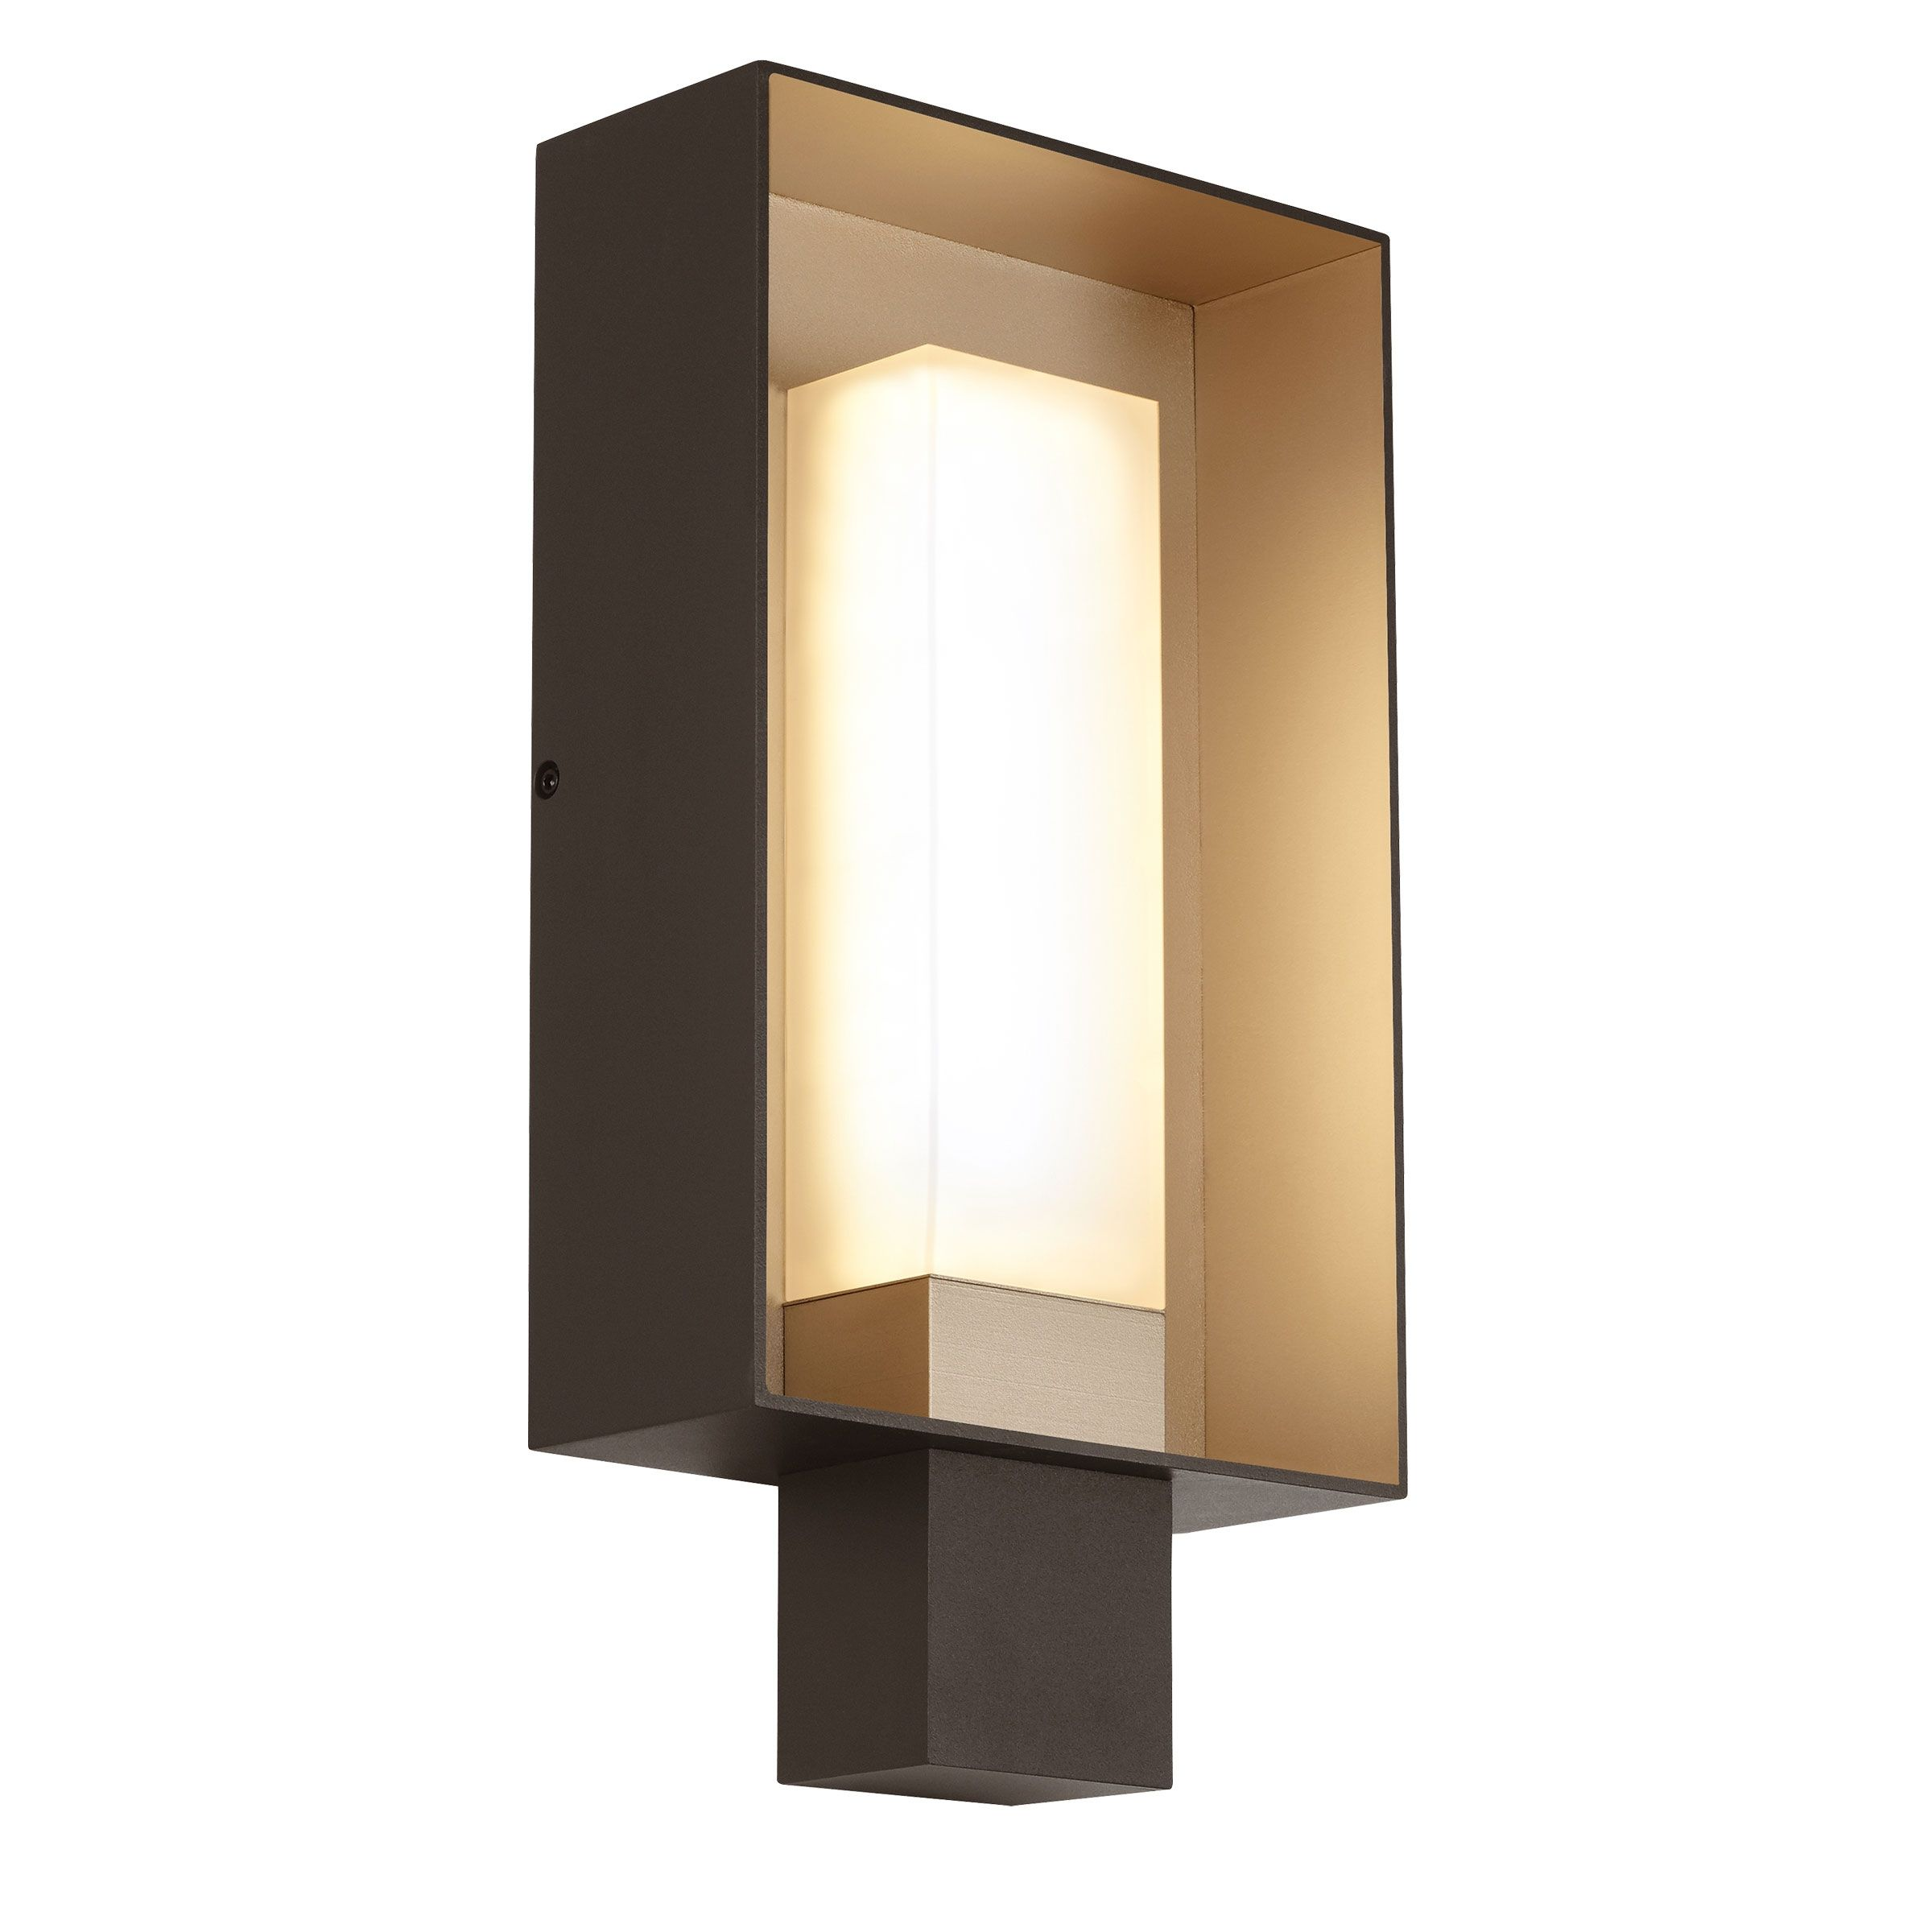 The Refuge Square Led Outdoor Wall Light Exudes Clean Contemporary Styling While Projecting A W Outdoor Wall Sconce Led Outdoor Wall Lights Large Wall Lighting